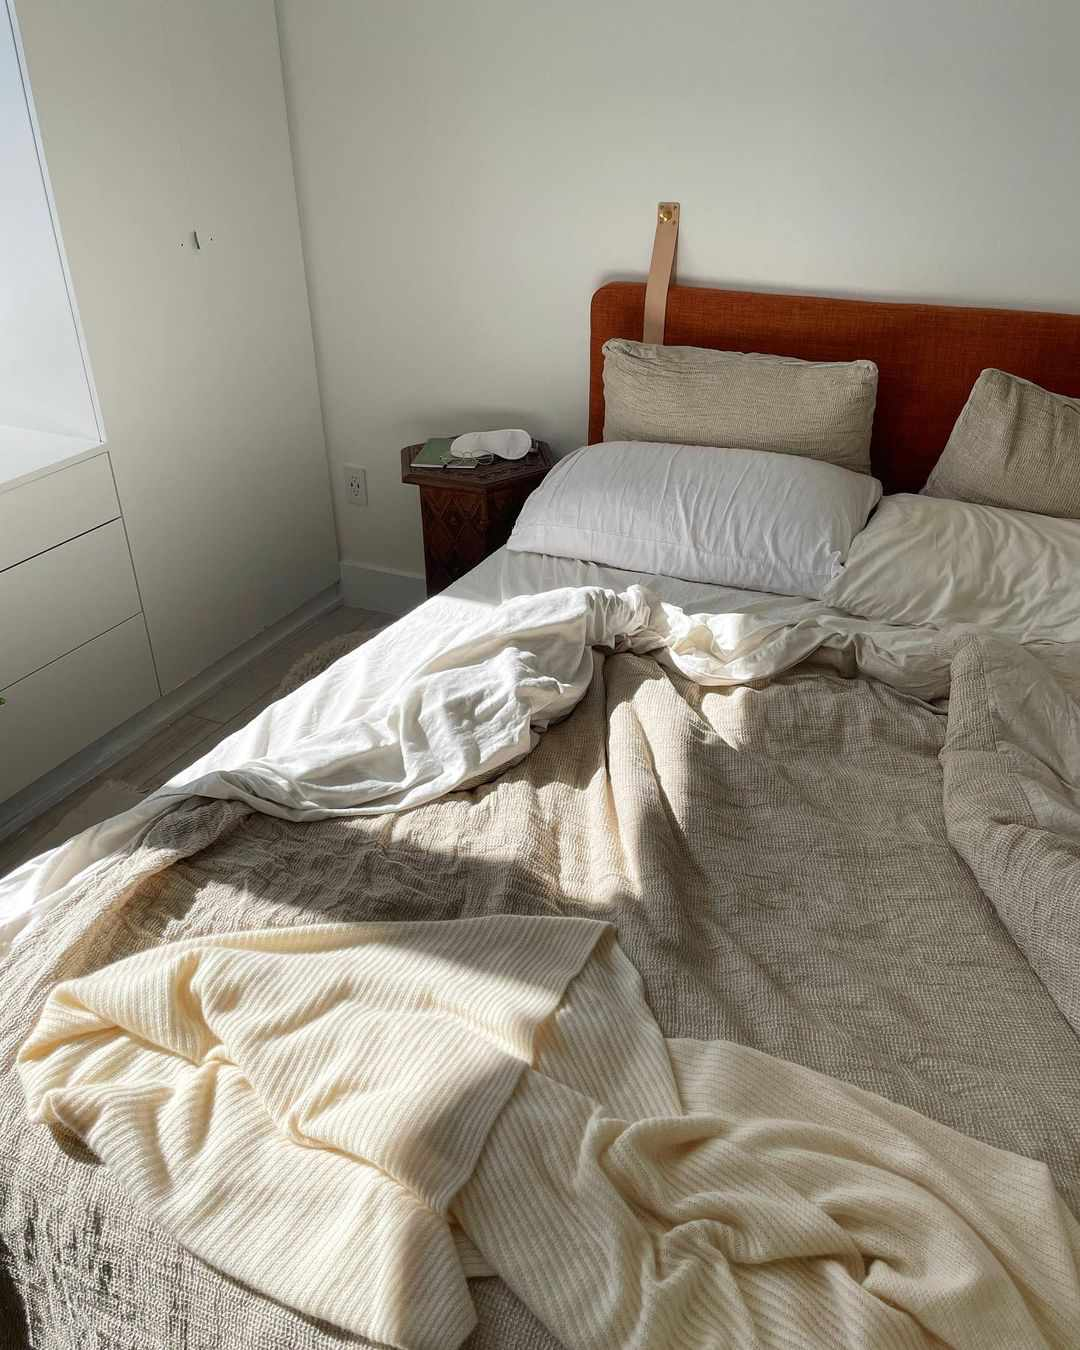 Messy bed with white and brown sheets.